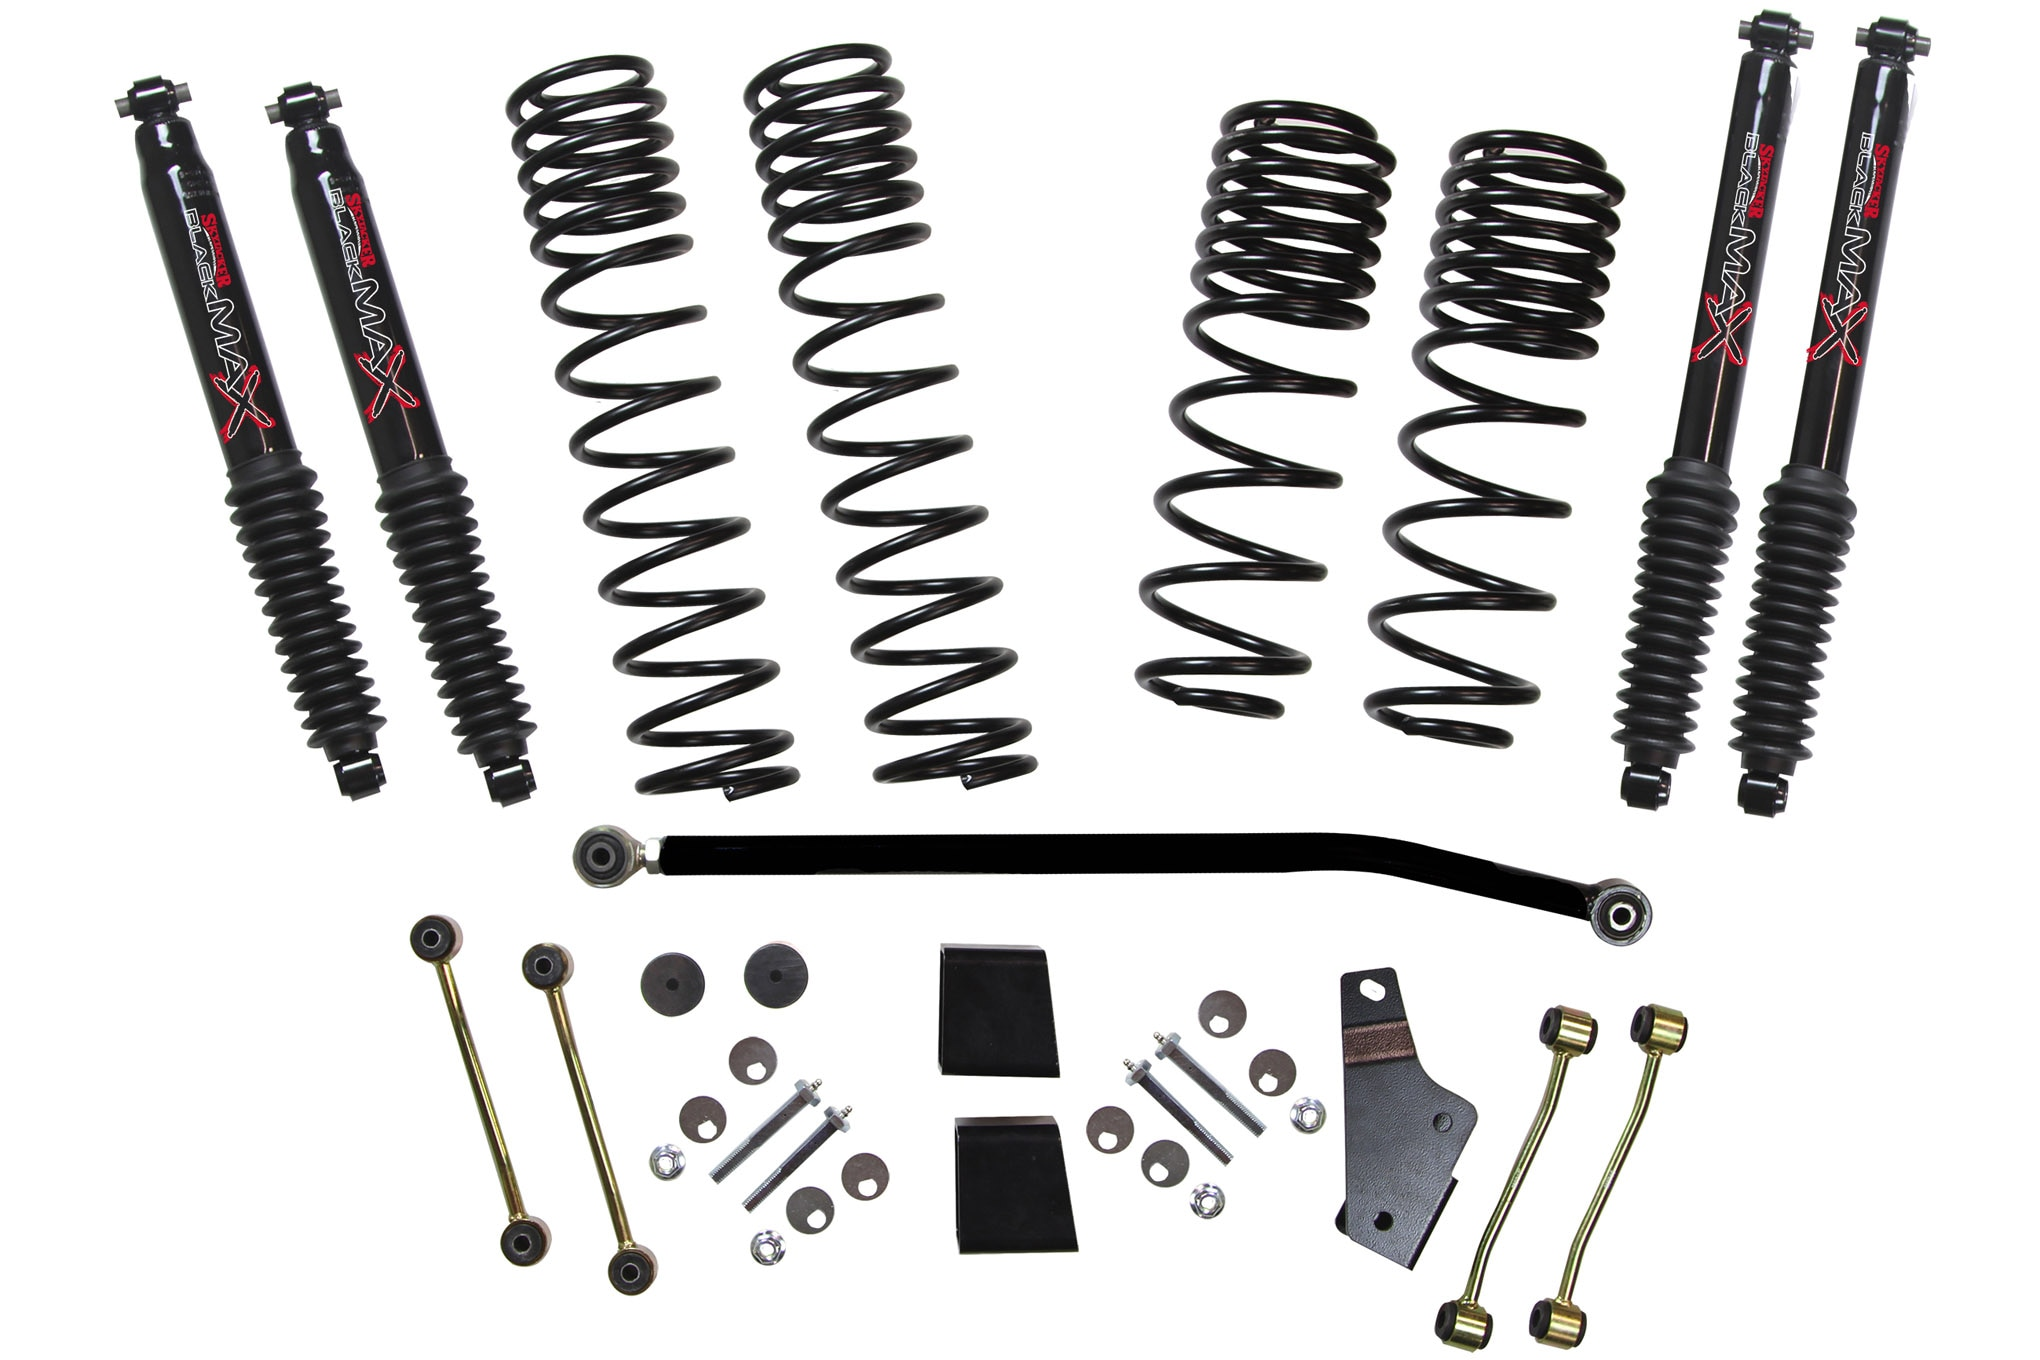 new products skyjacker jeep wrangler jl suspension lift kit